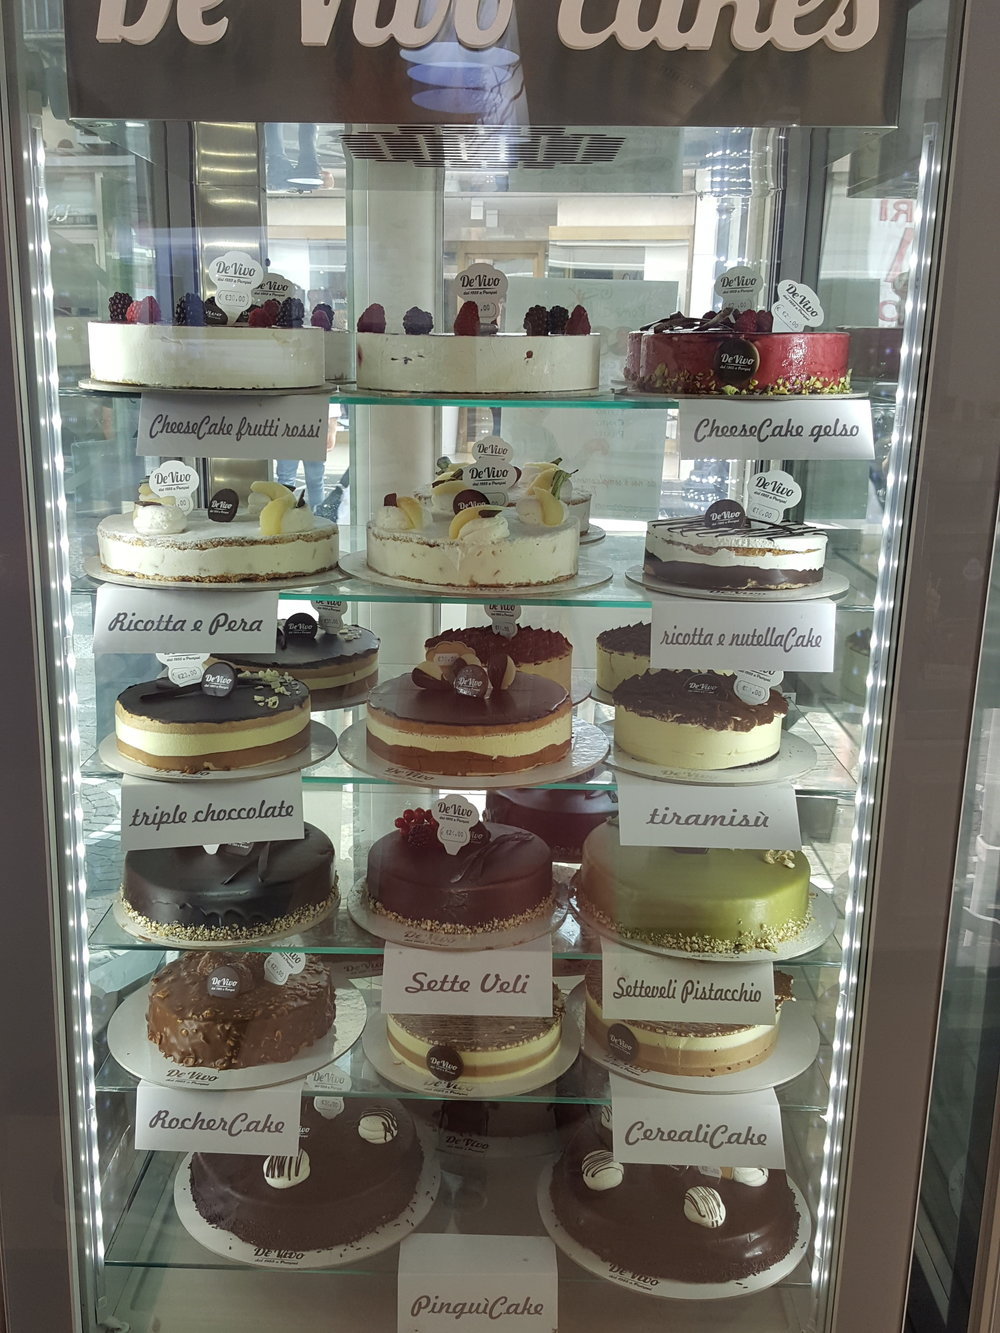 One of Da Vivo's many cases filled with whole cakes.